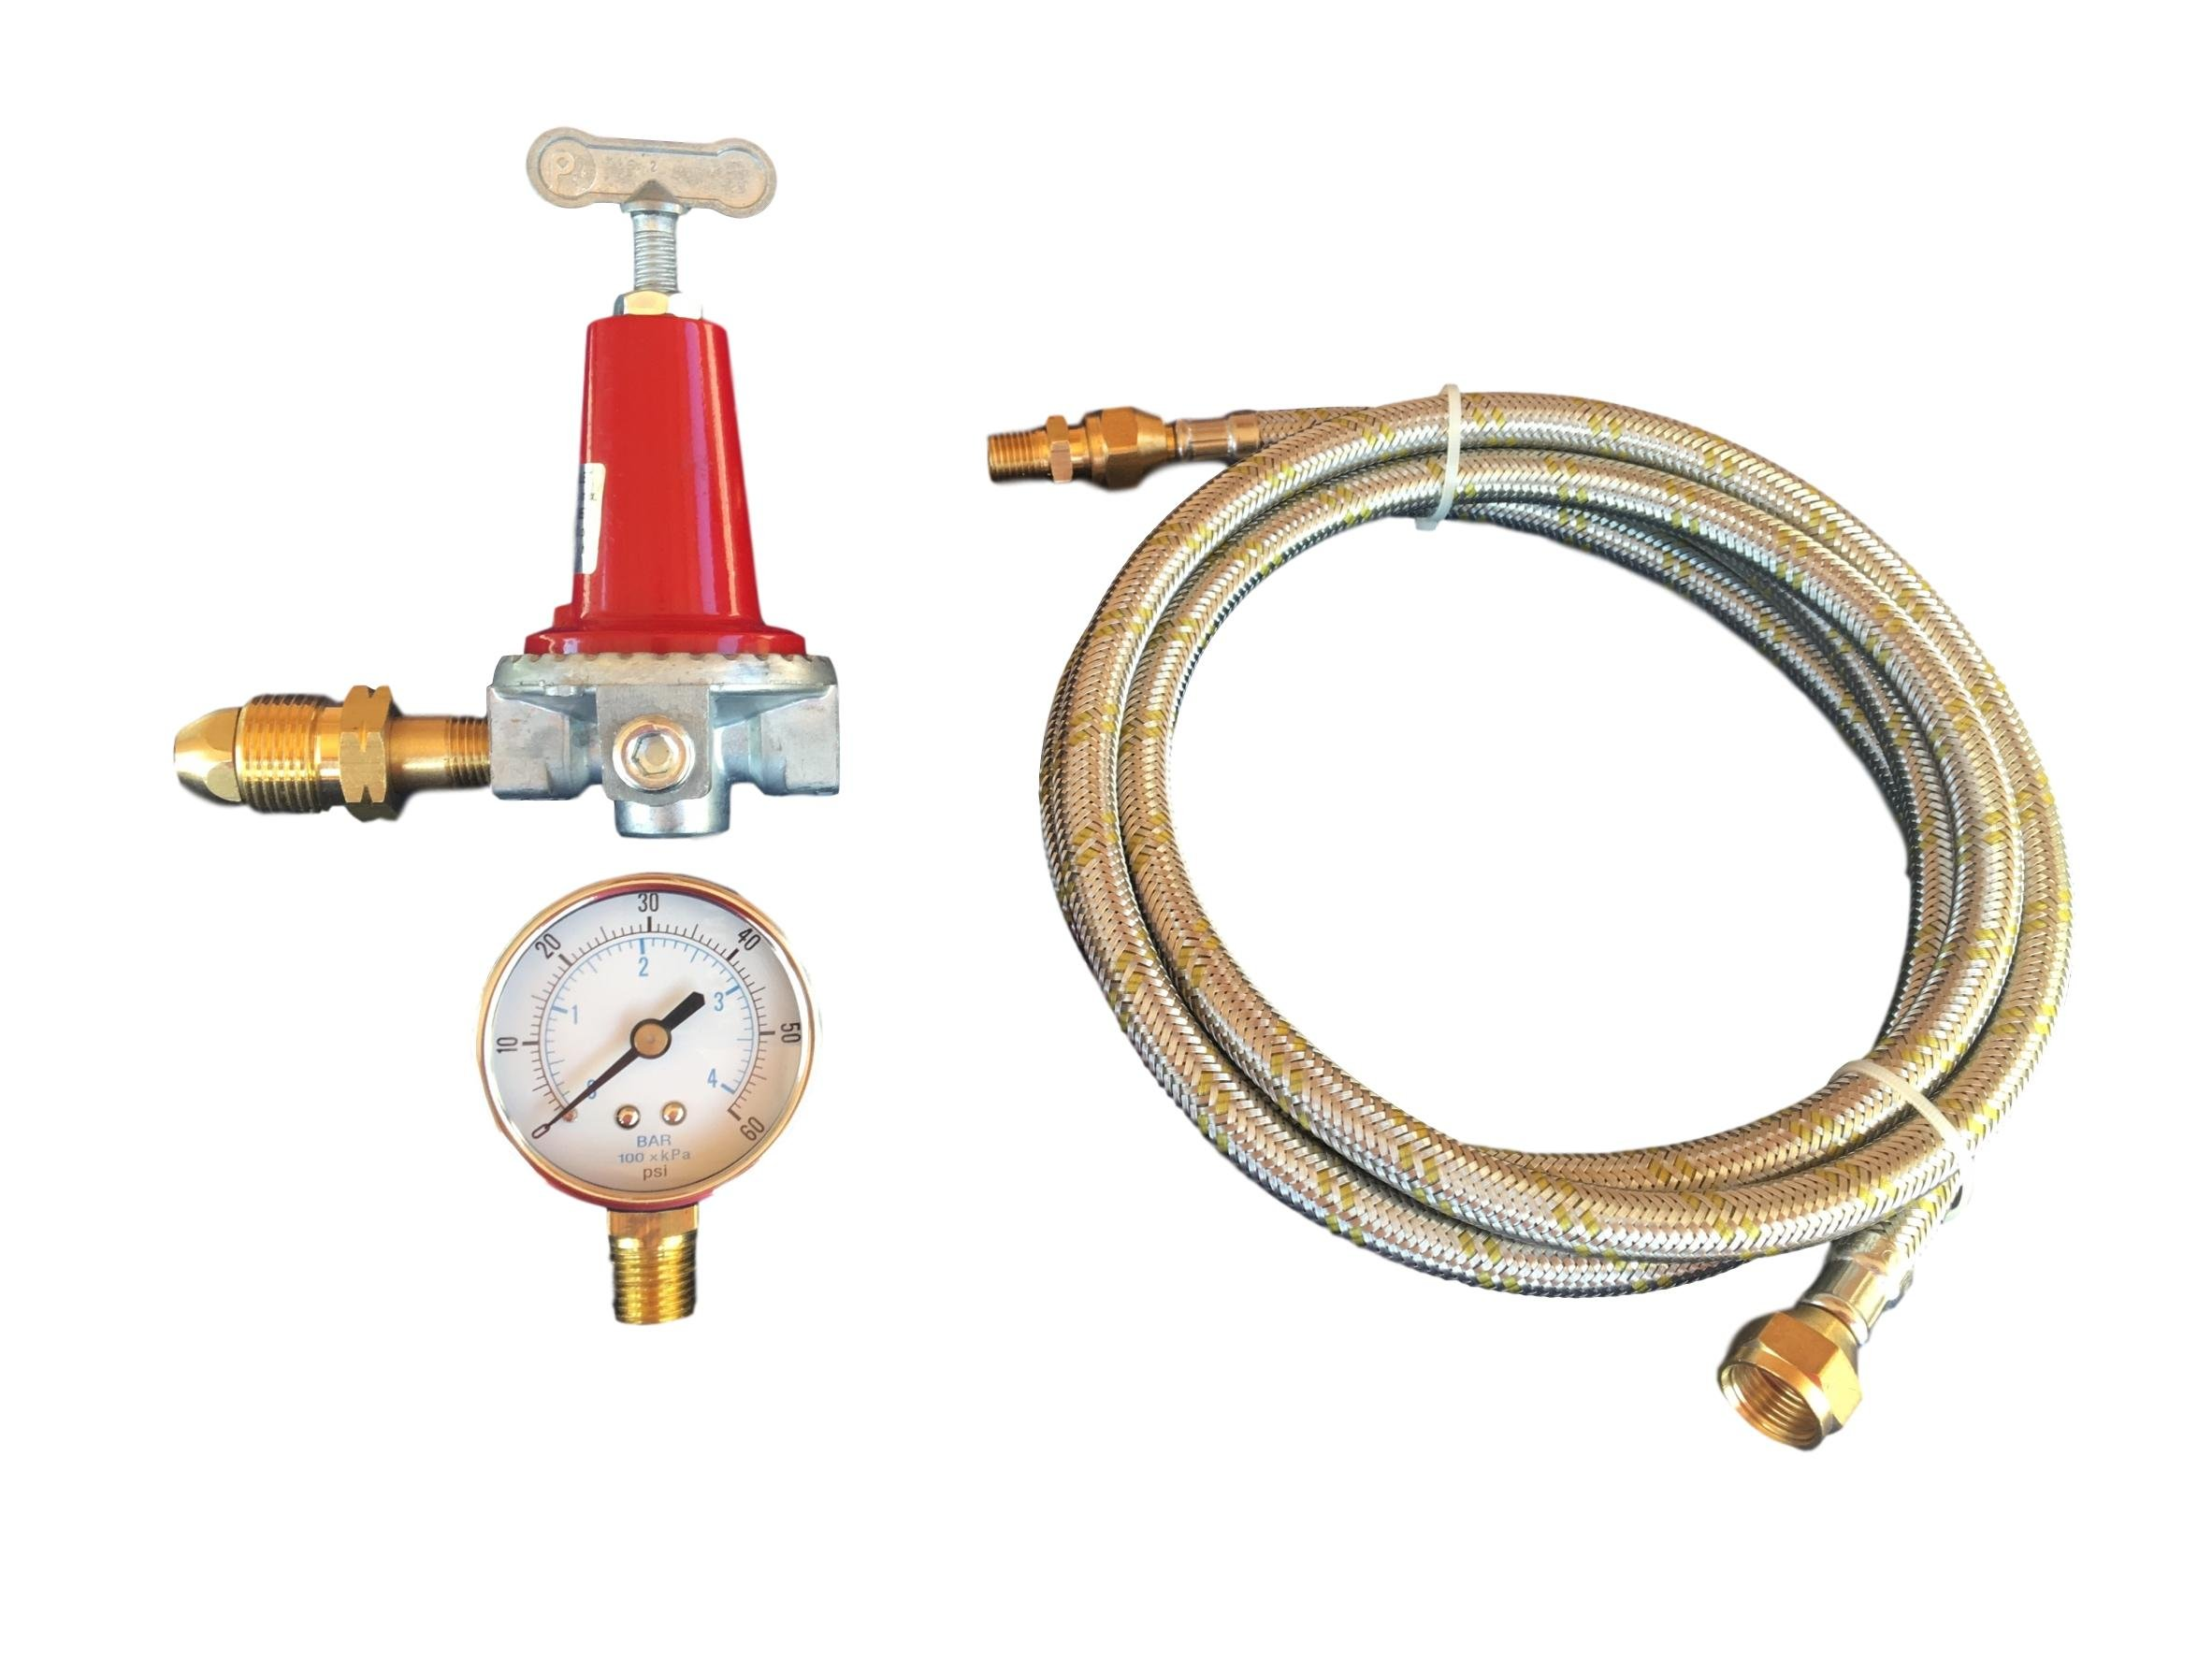 High Pressure Adjustable 0 to 40psi Propane Regulator POL LP Gas Gauge and 12ft Stainless Steel Braided Hose